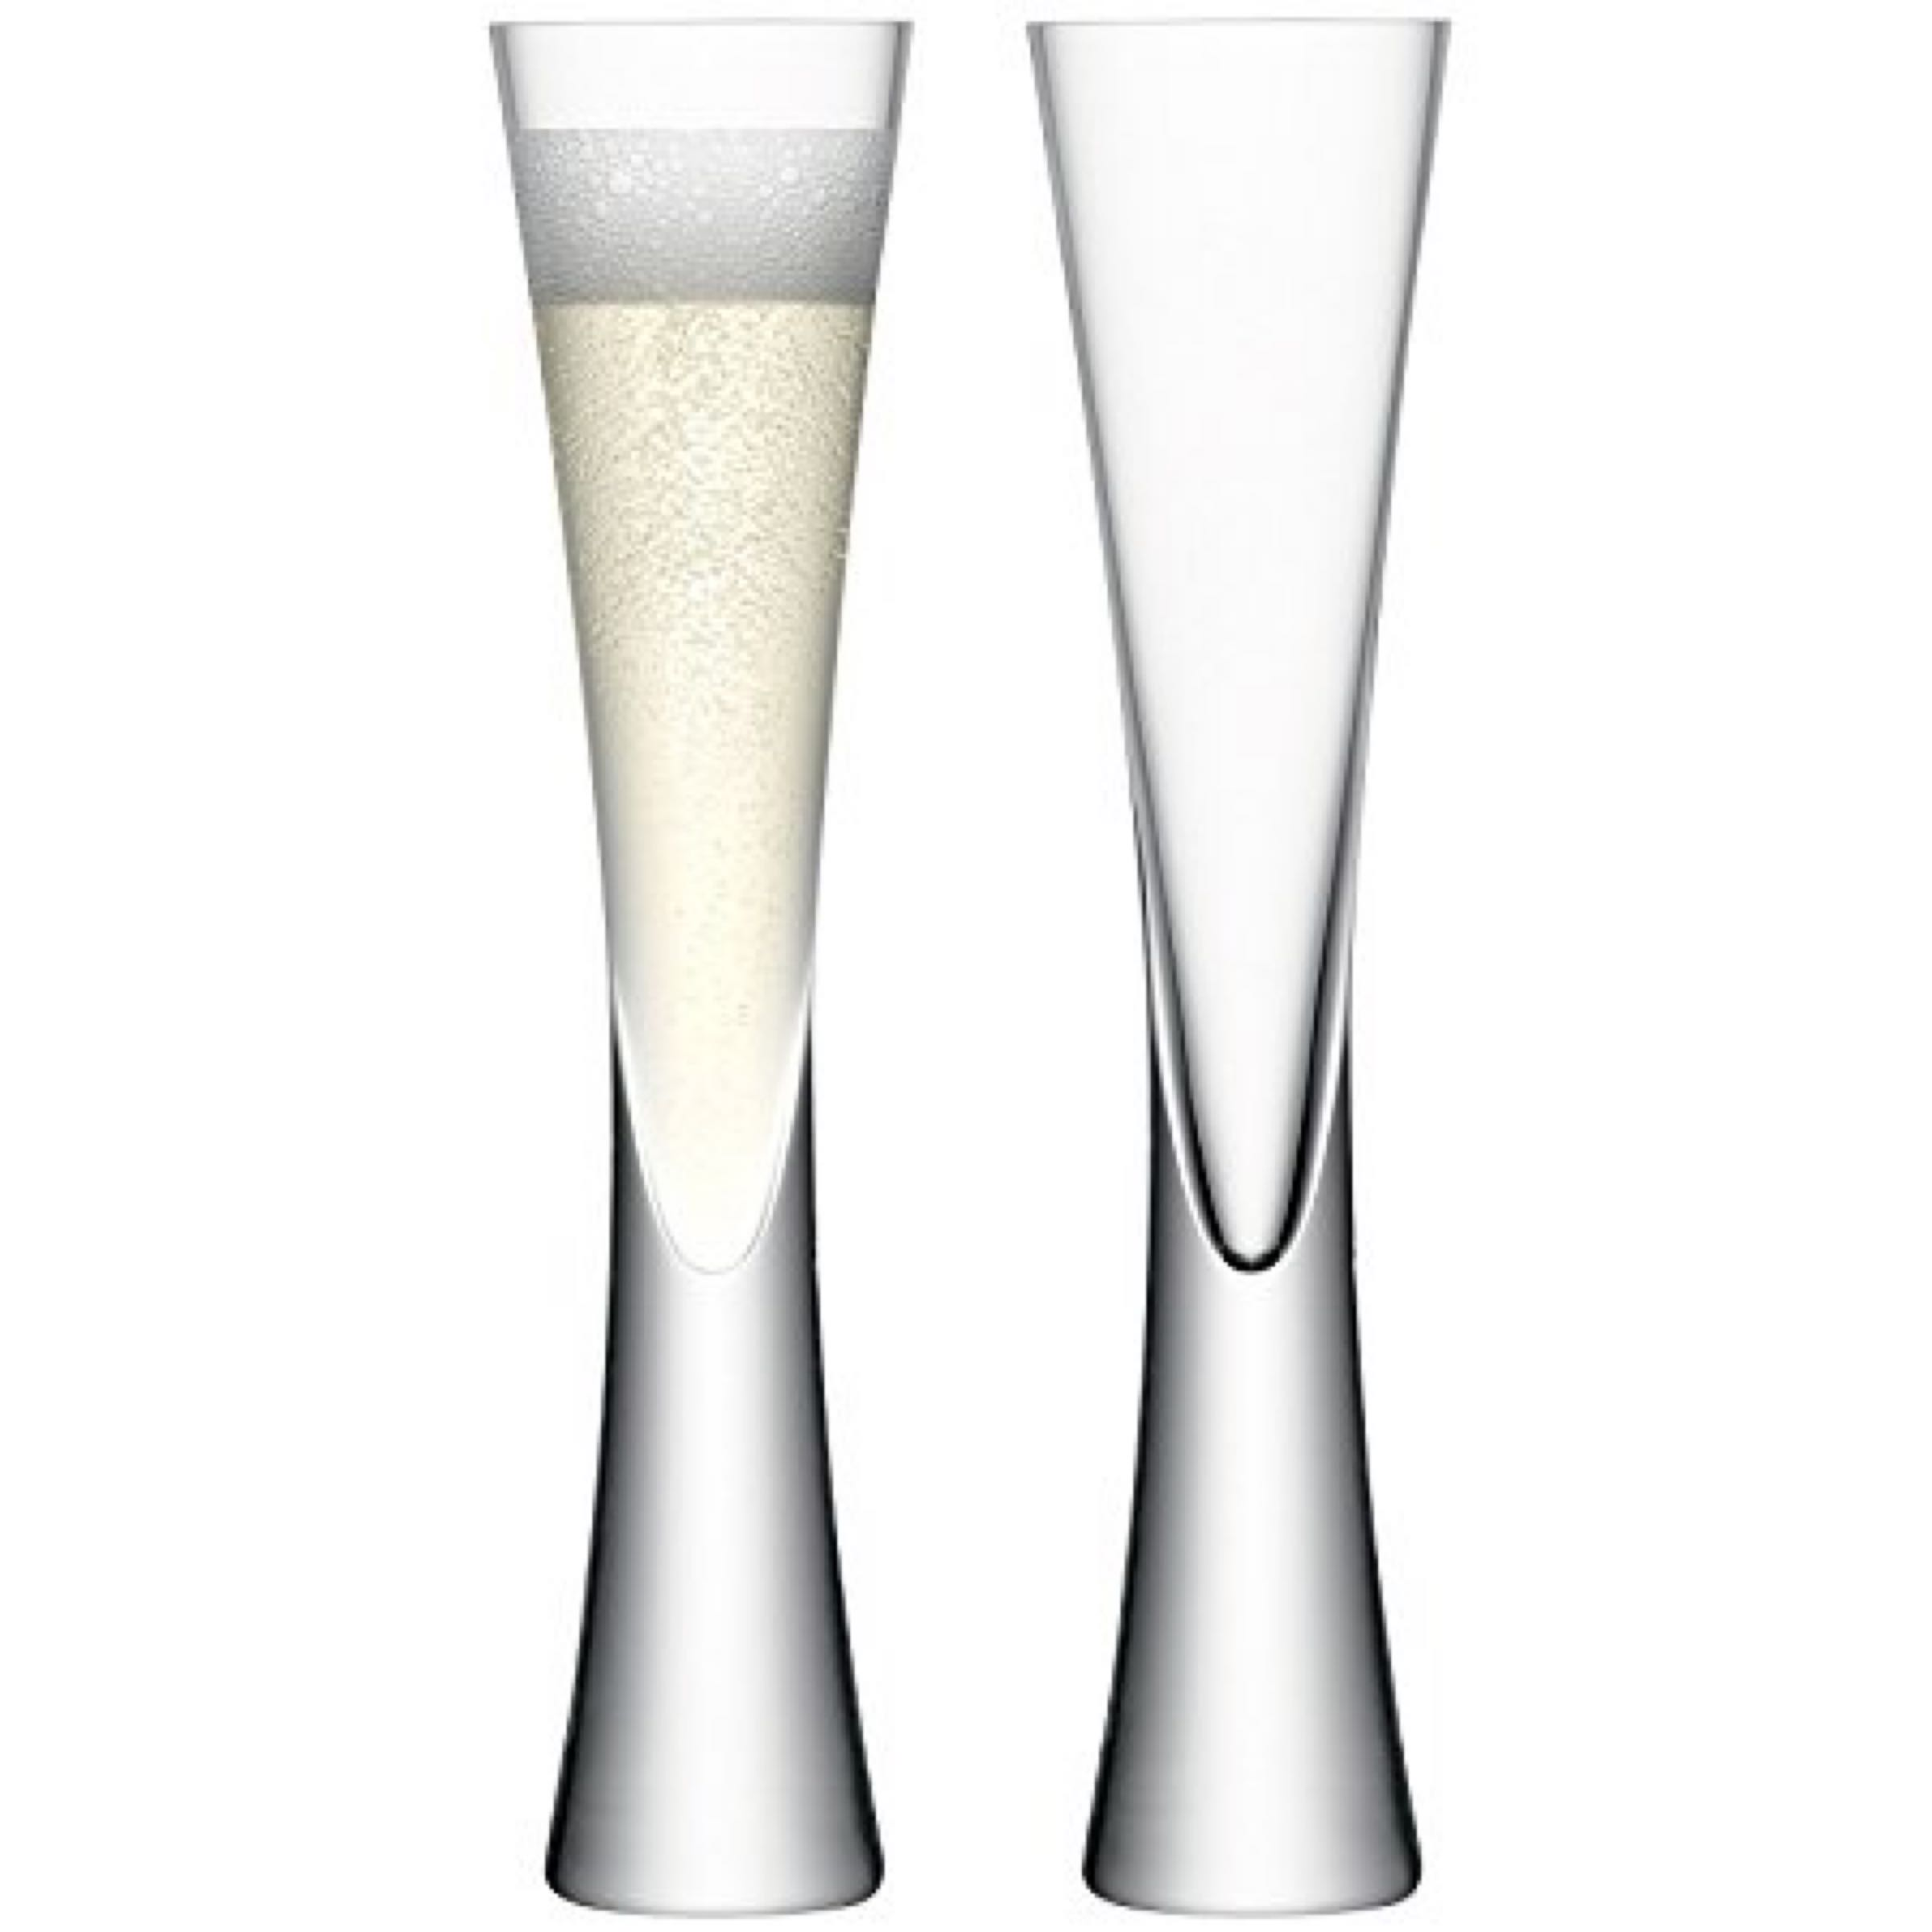 LSA - Moyà Champagne Flutes (set of 2)